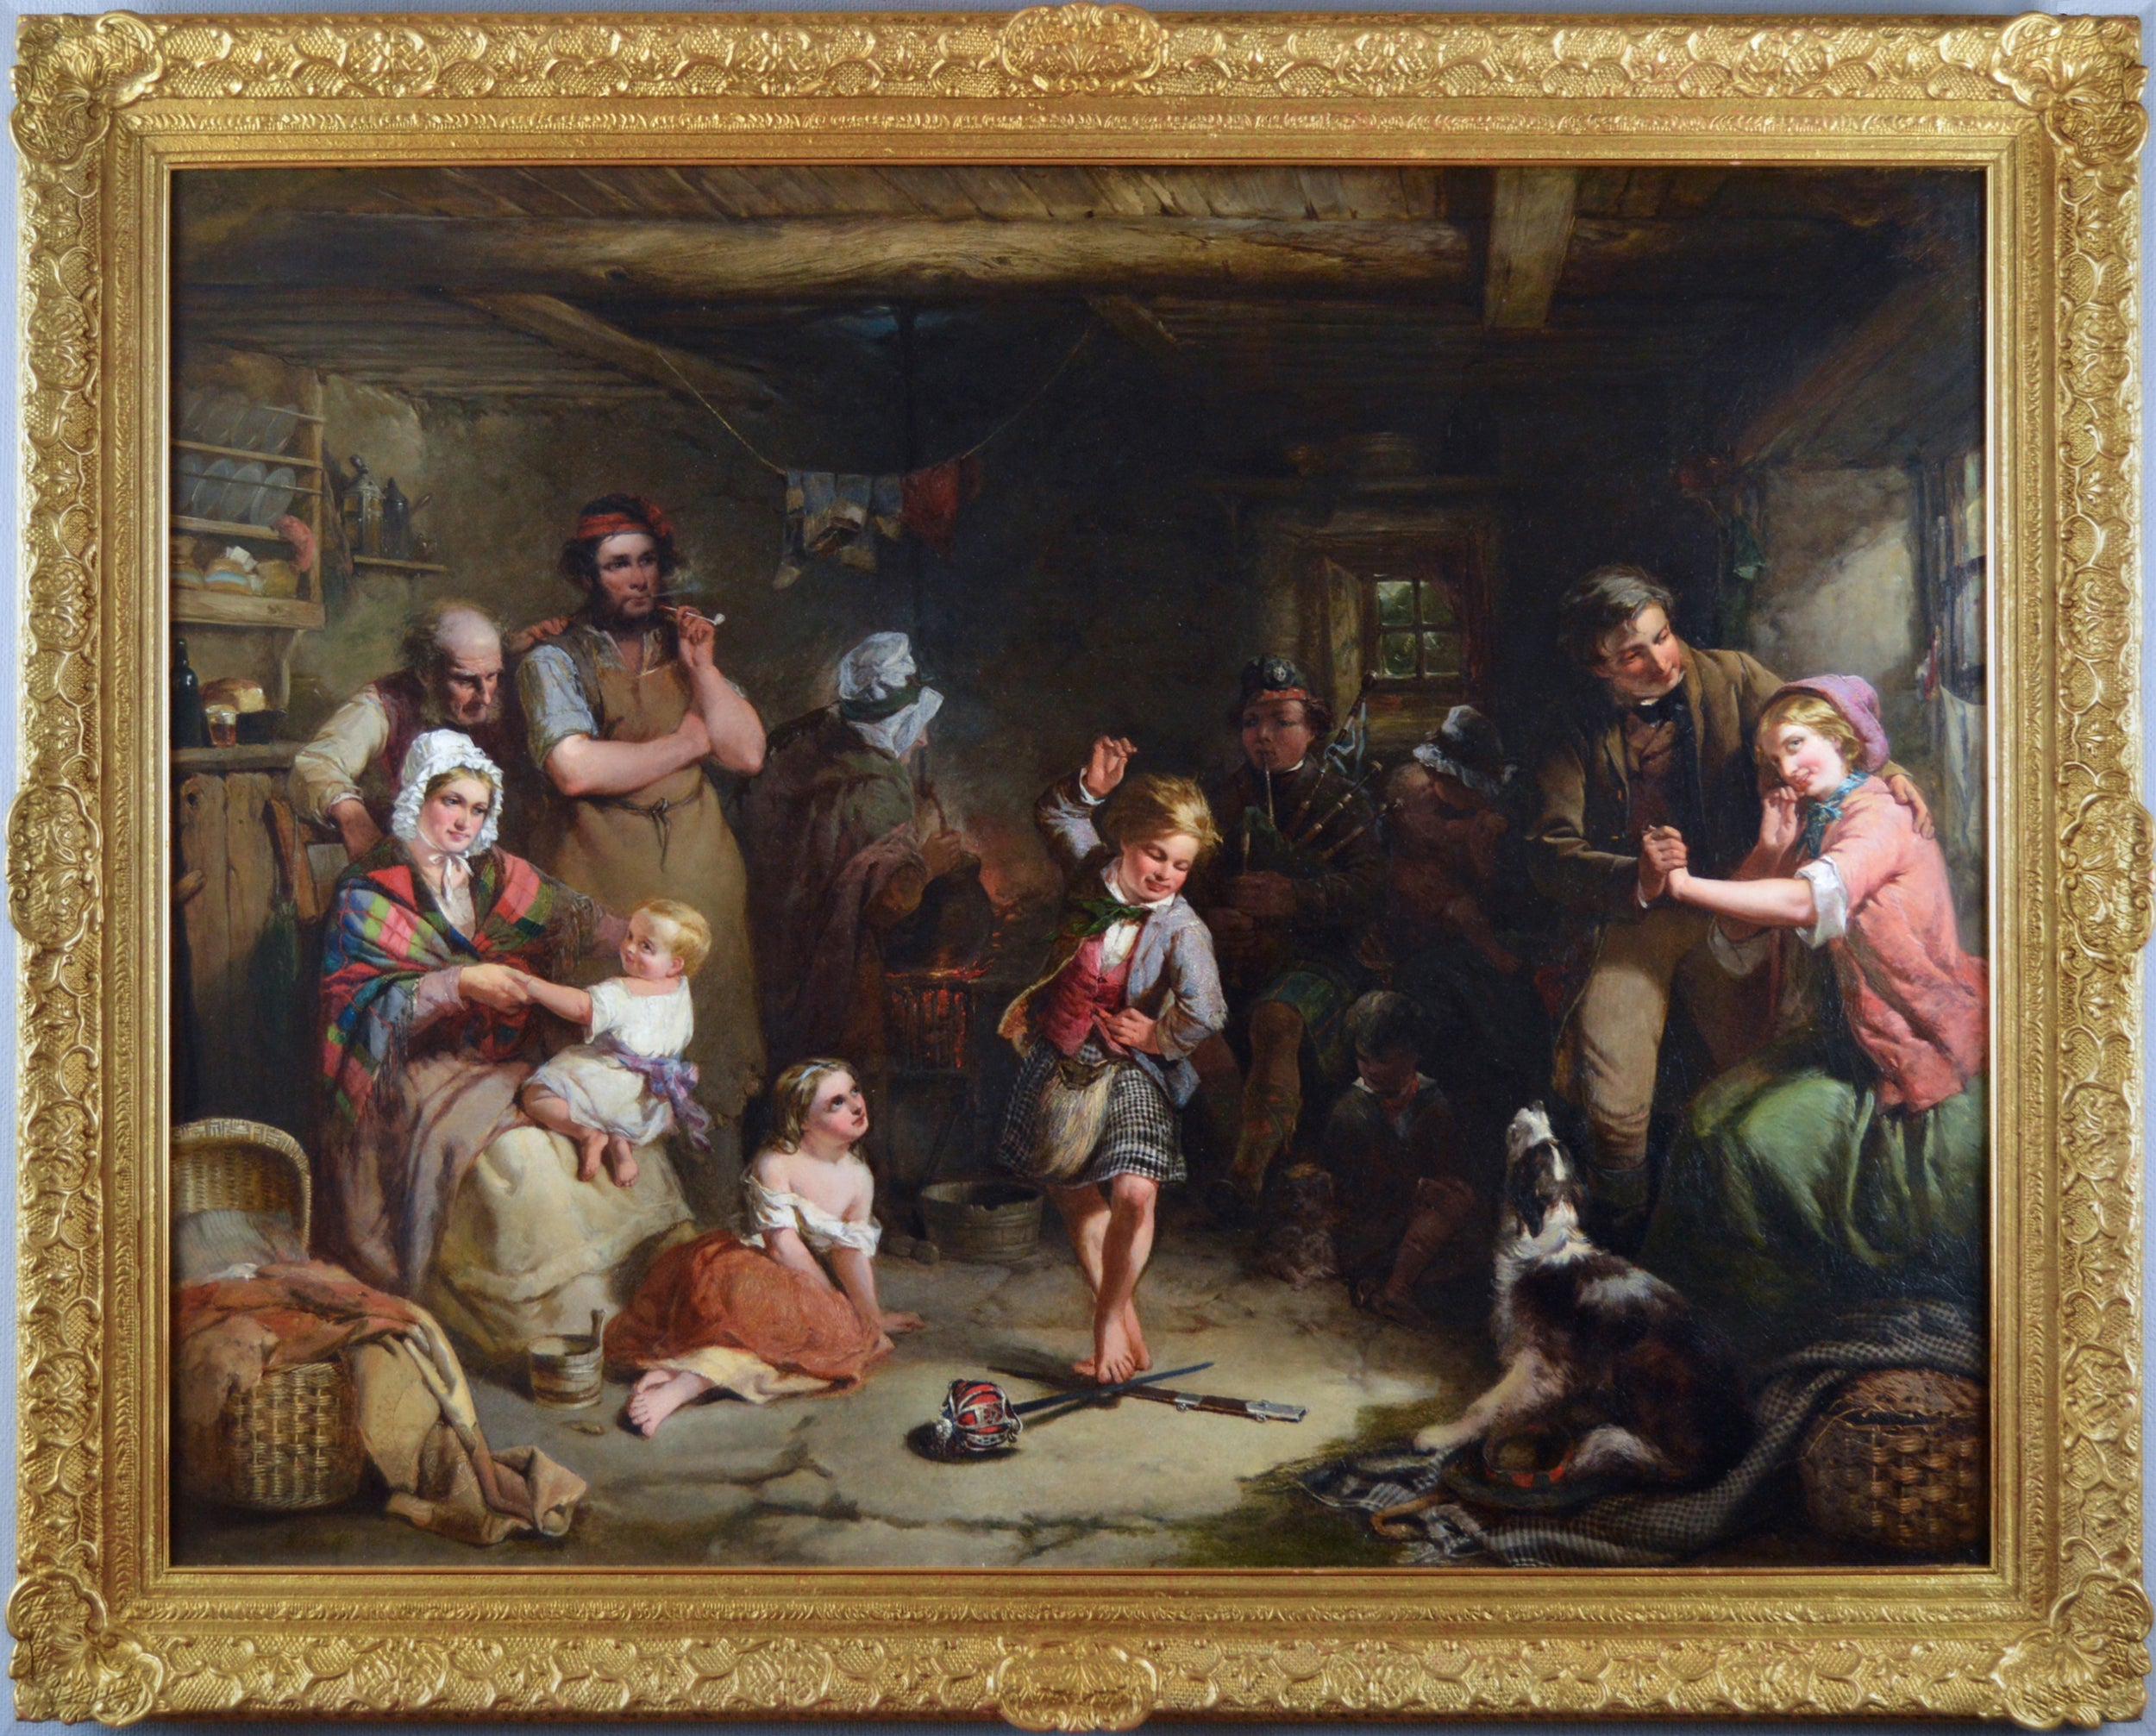 19th Century genre oil painting of a boy performing a sword dance